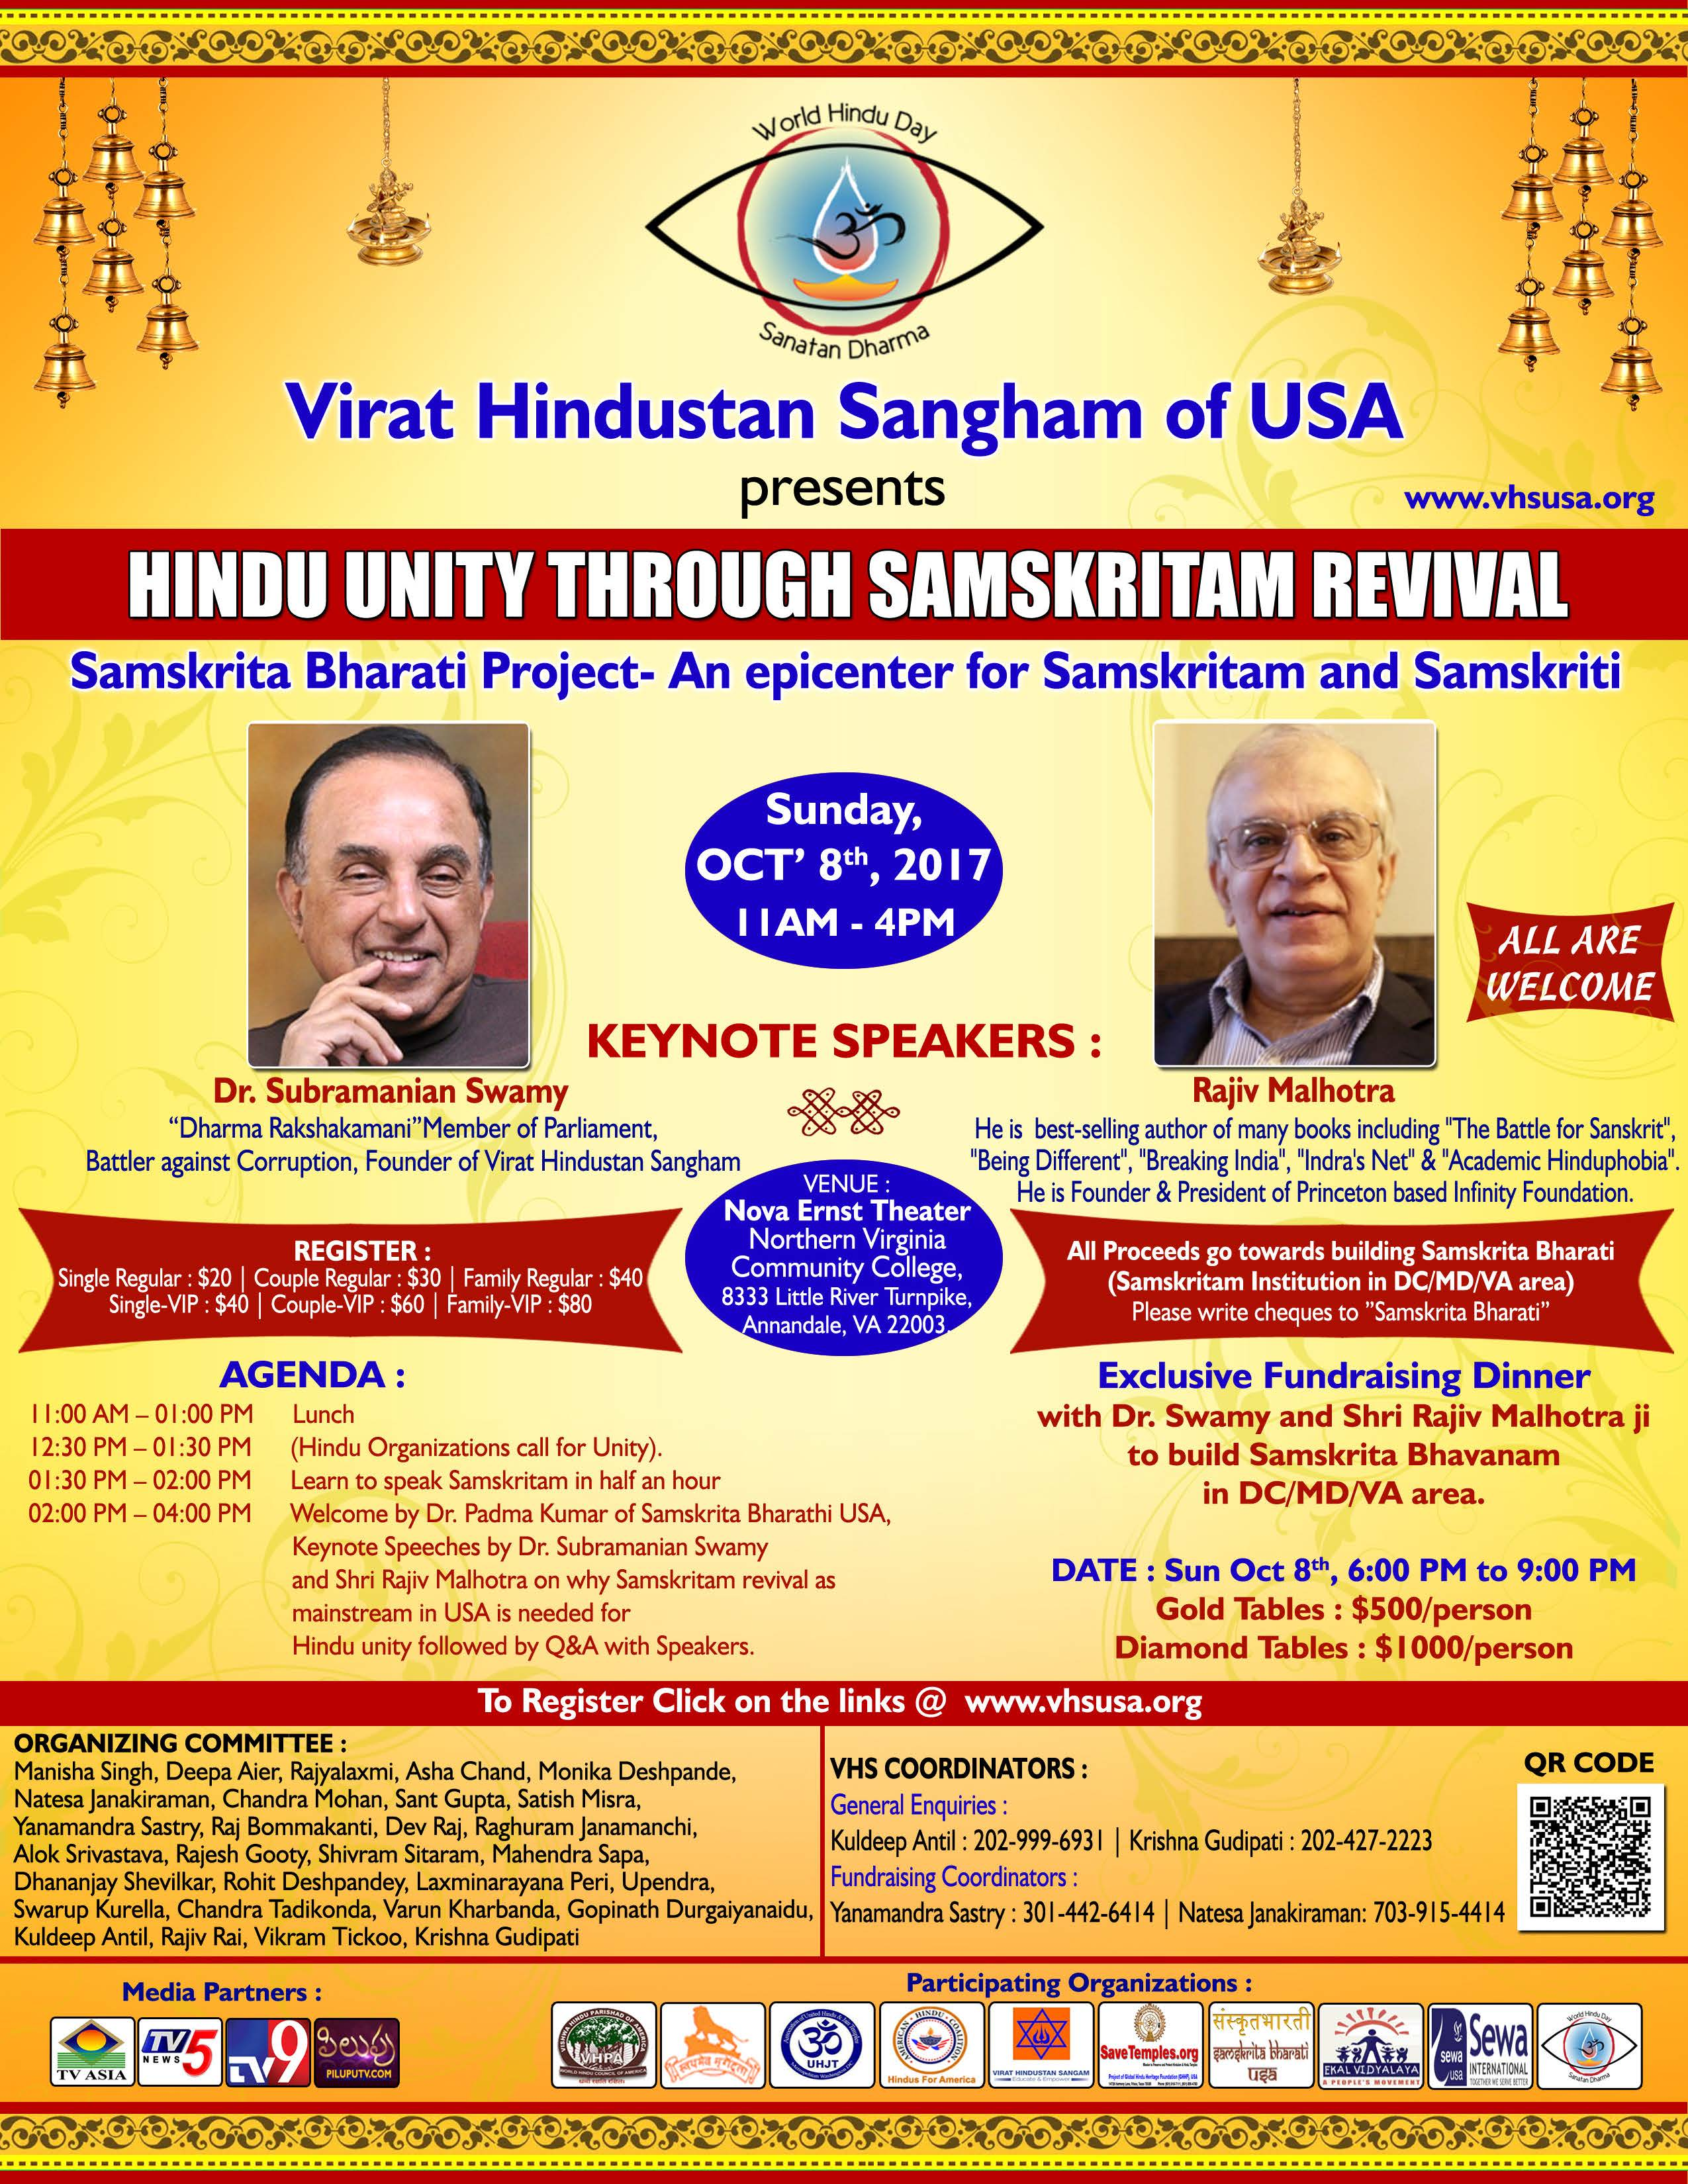 Flyer1 WorldHinduDayFlierOct8th